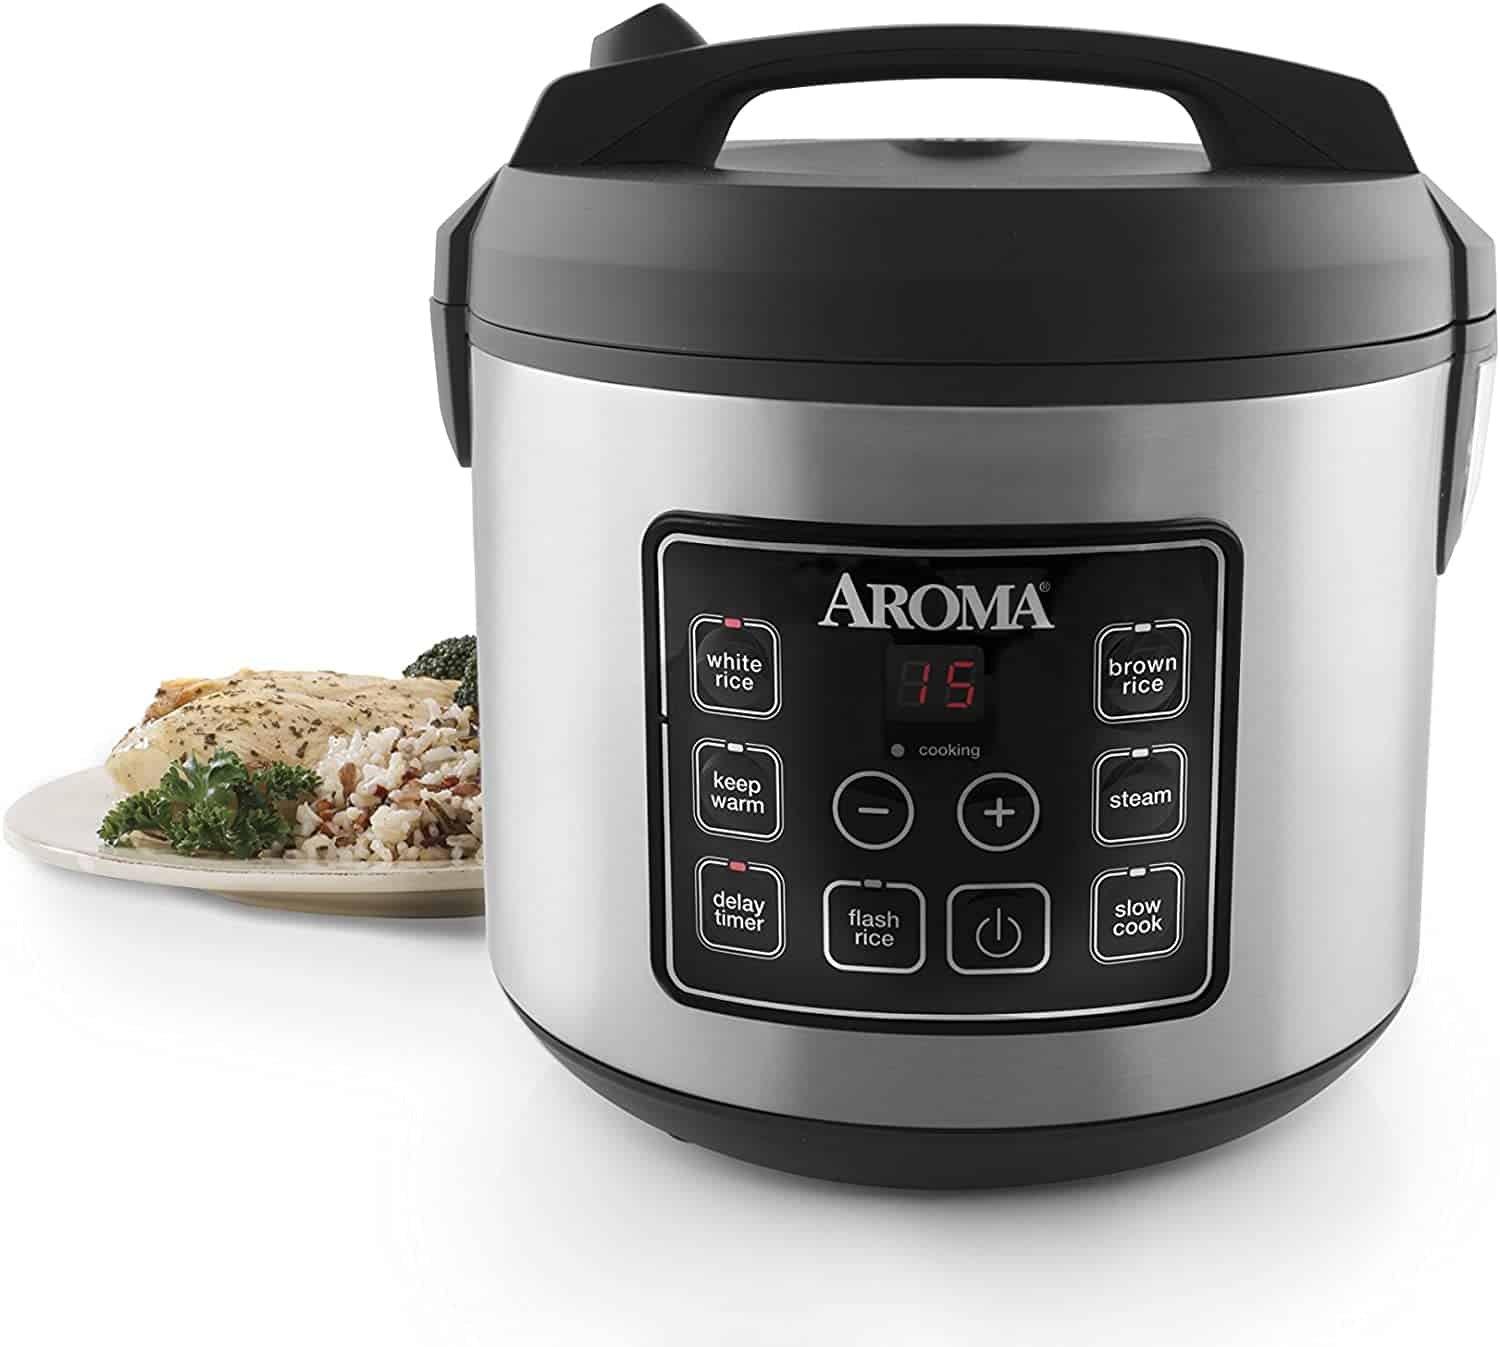 Aroma ARC-150SB 20-Cup Digital Rice Cooker Review